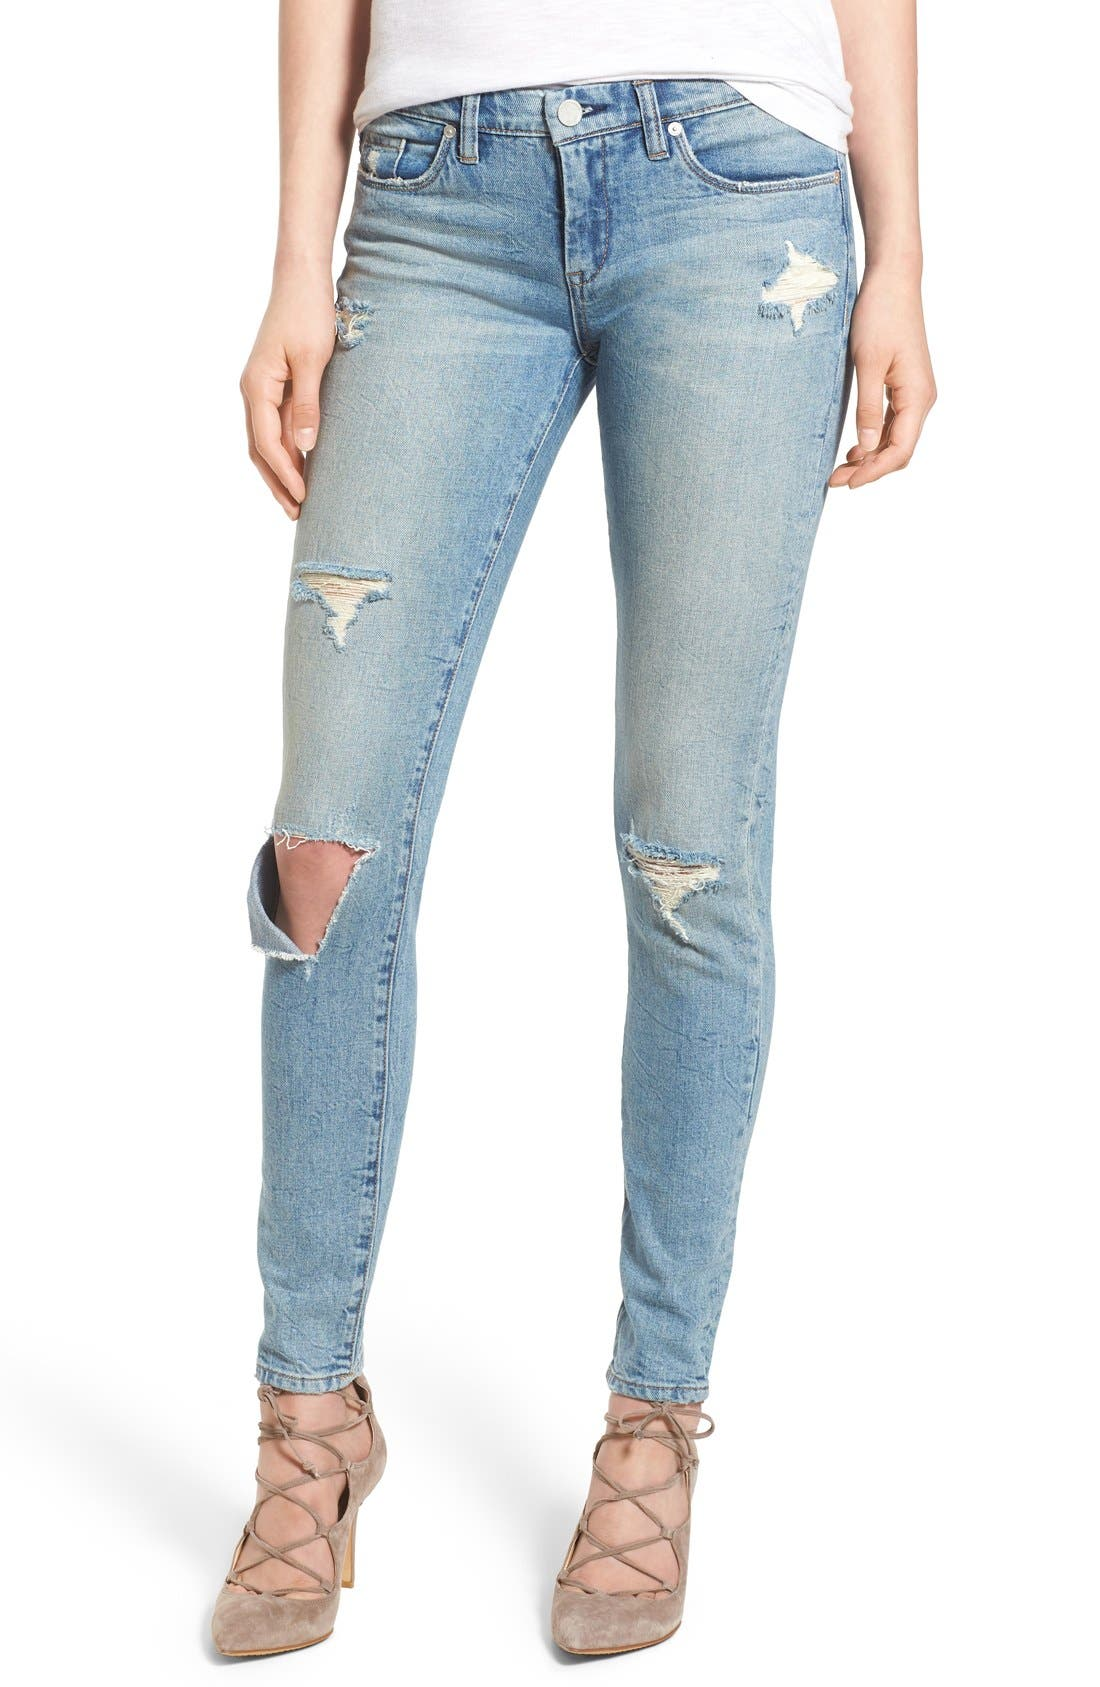 Alternate Image 1 Selected - BLANKNYC 'Skinny Dipper' Distressed Skinny Jeans